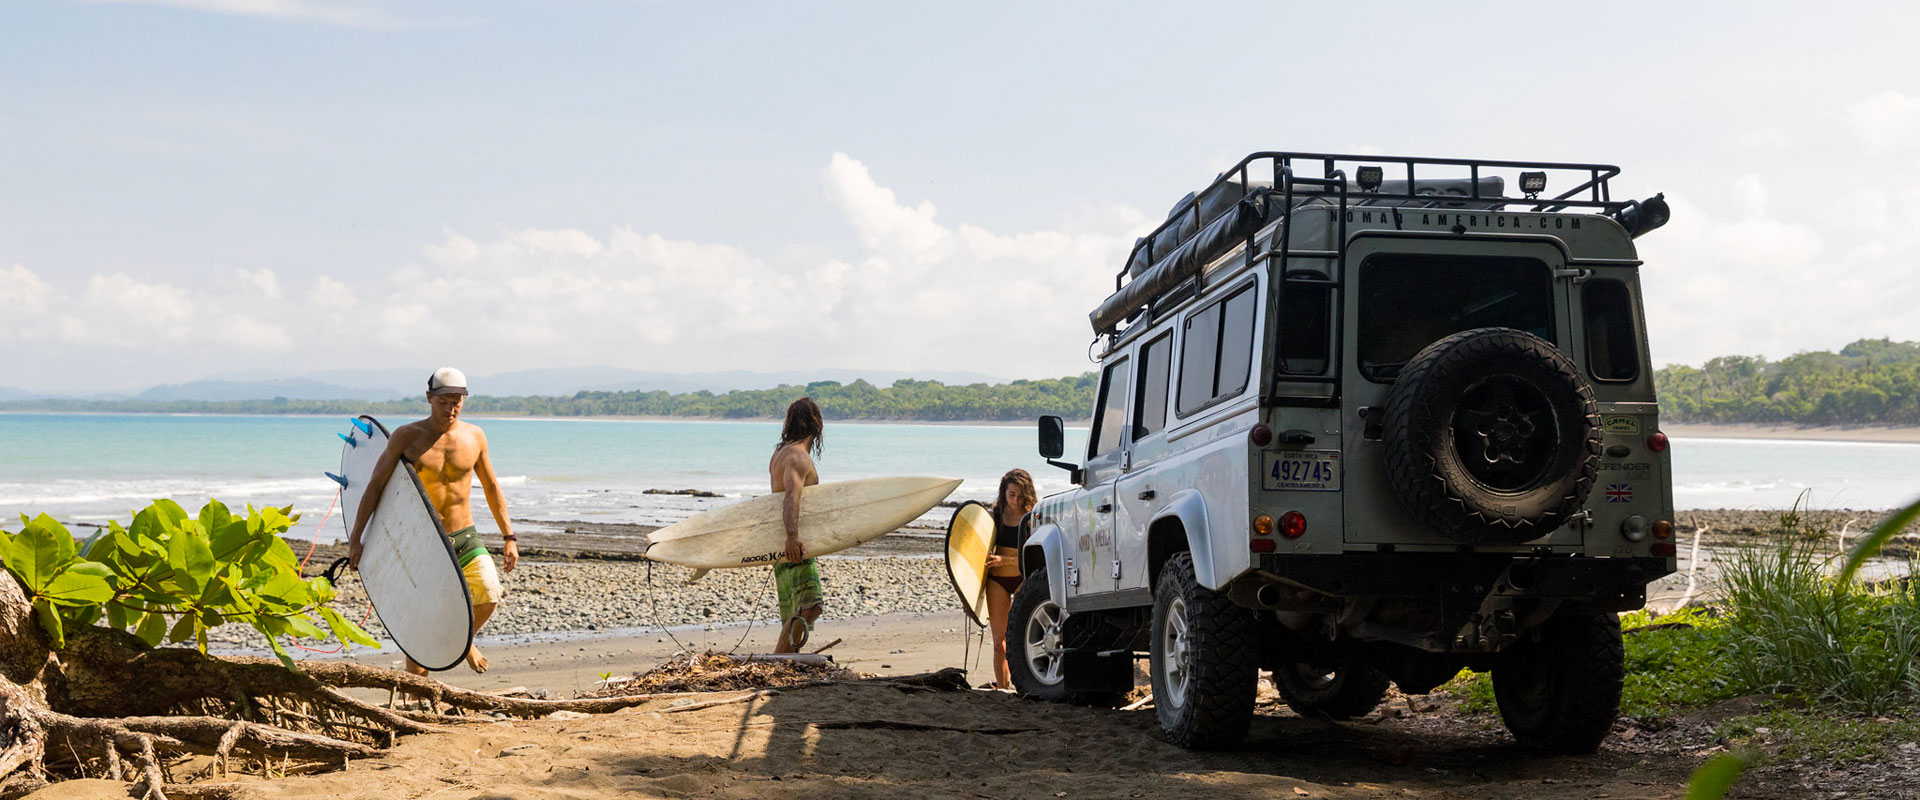 surf-expedition-costa-rica-class